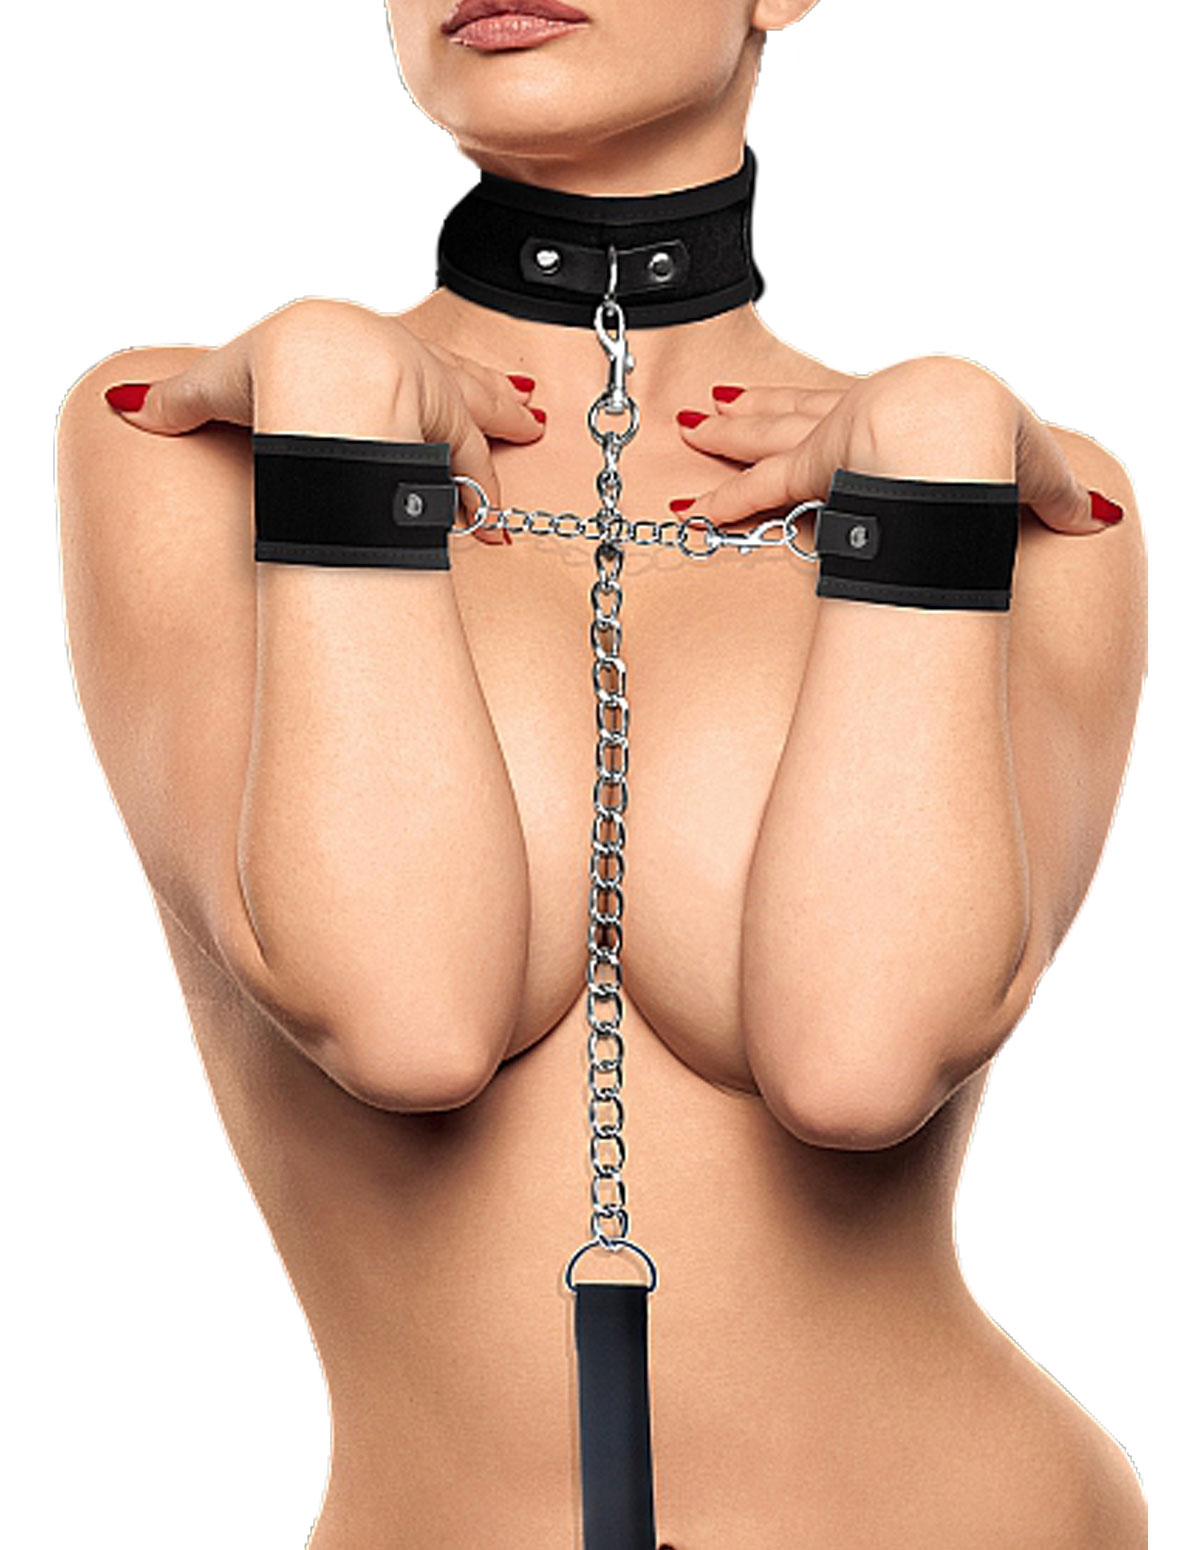 Velcro Collar & Cuffs Set